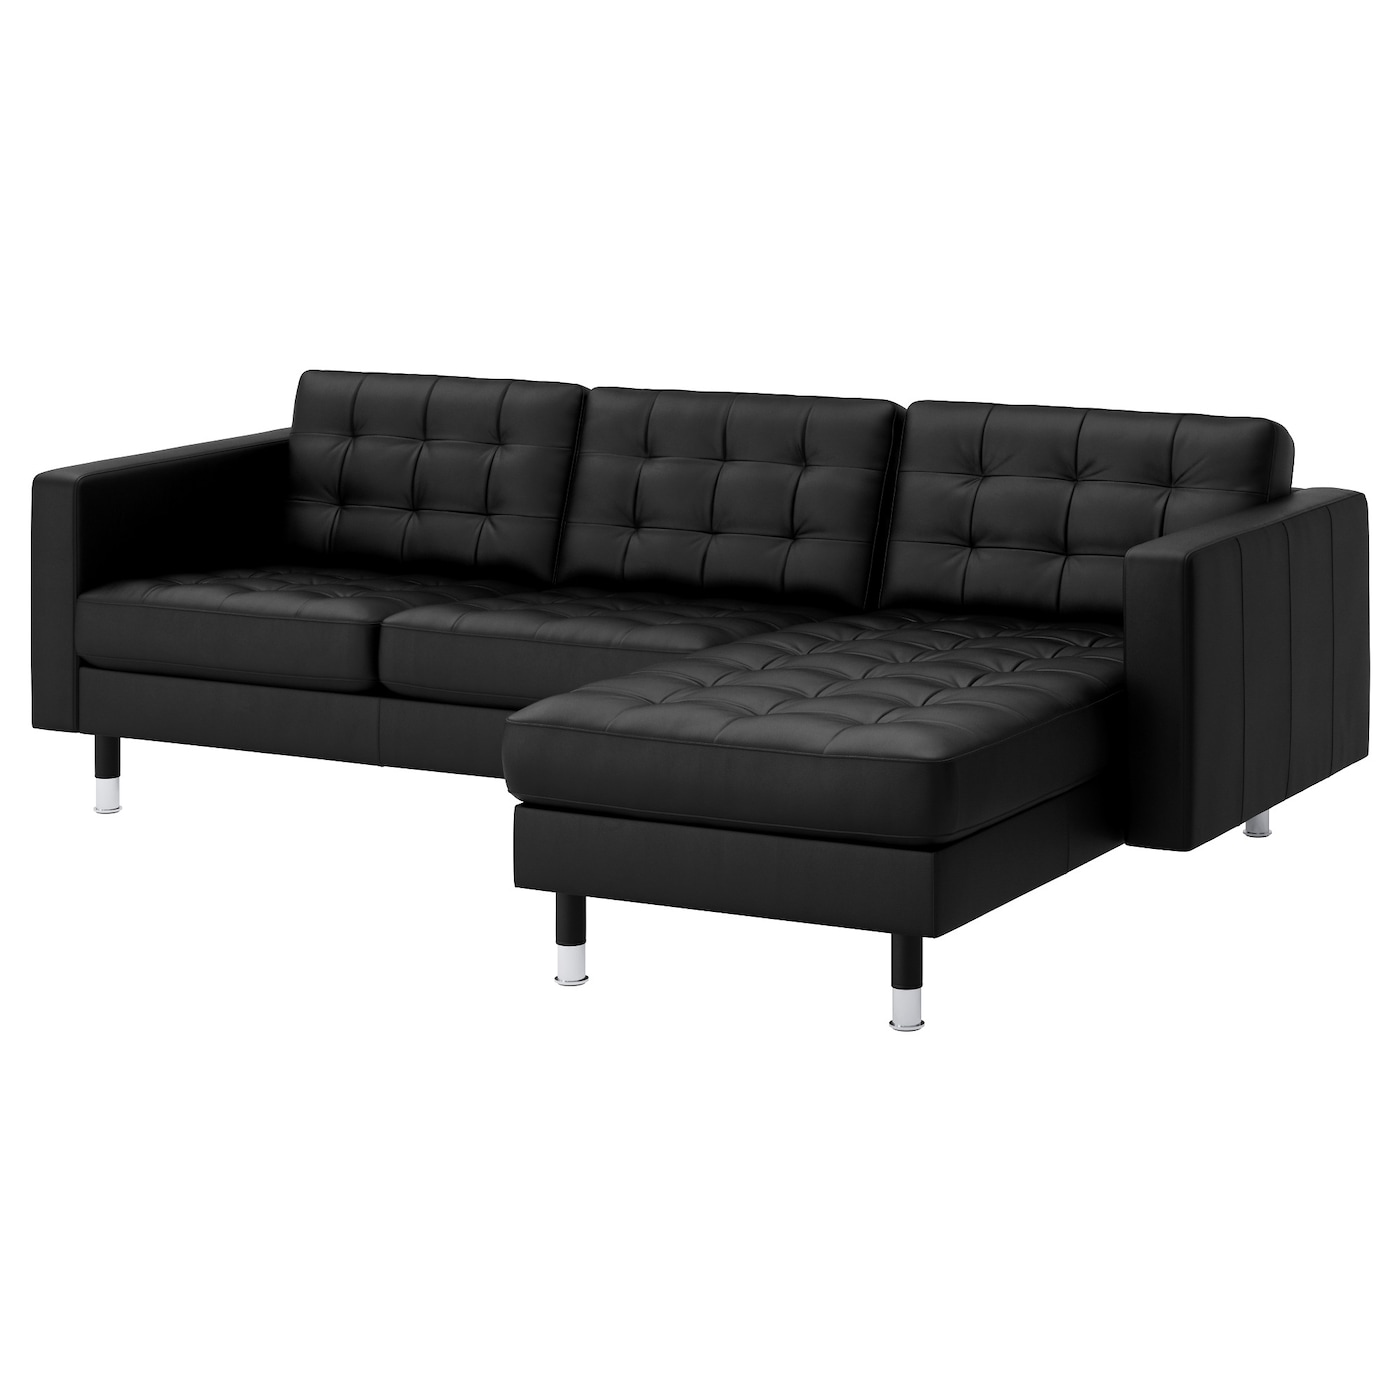 IKEA LANDSKRONA 3-seat sofa Removable armrests make it easy to add on a chaise longue.